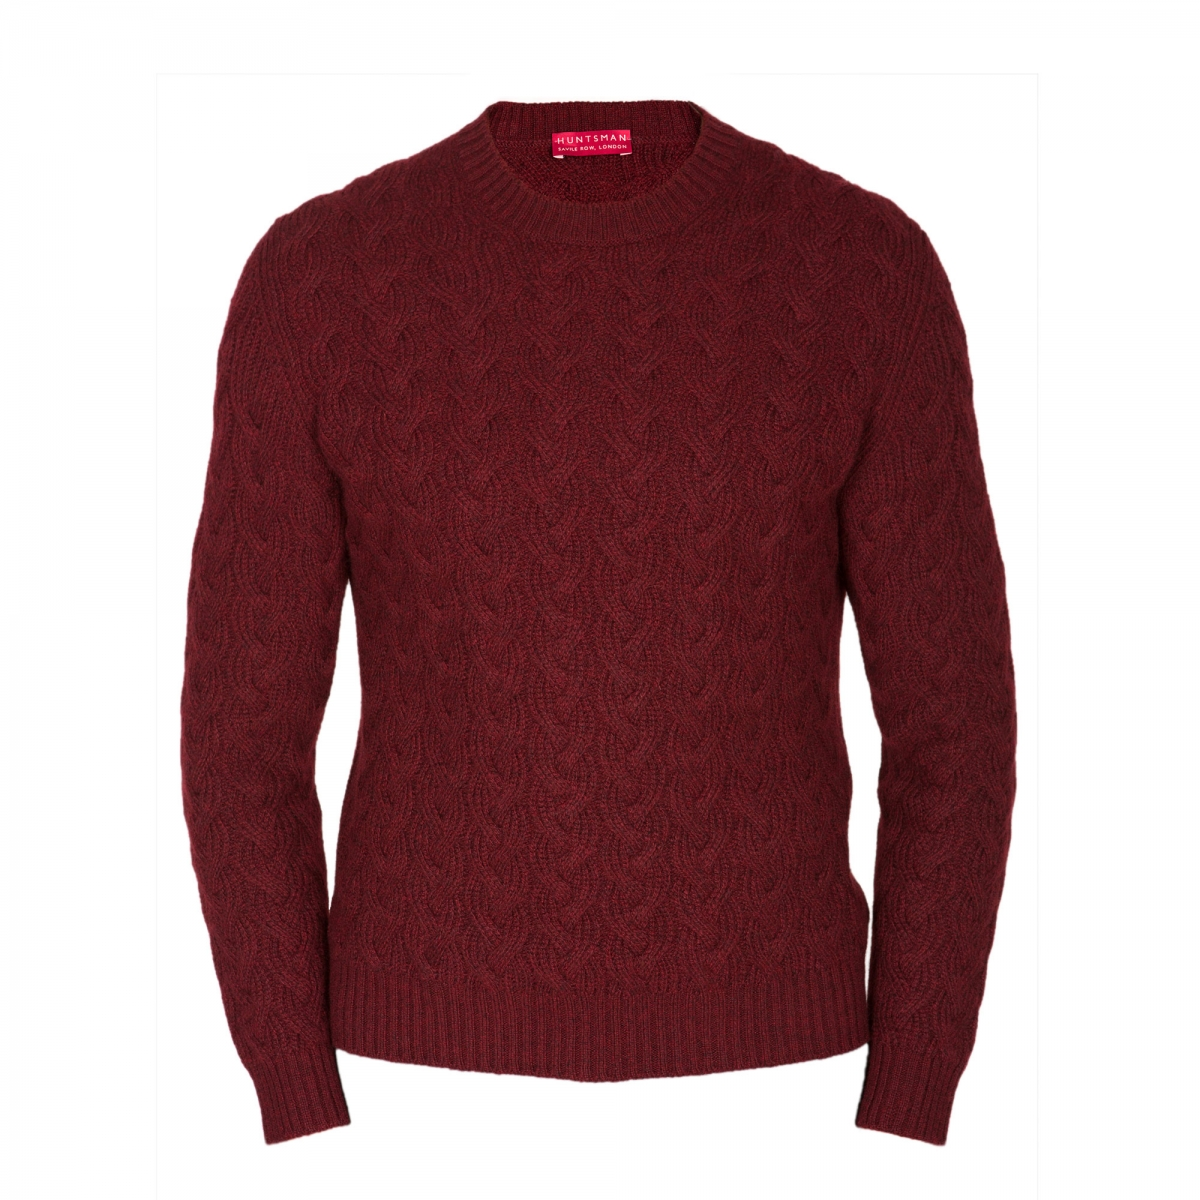 Huntsman Burgundy Knitwear